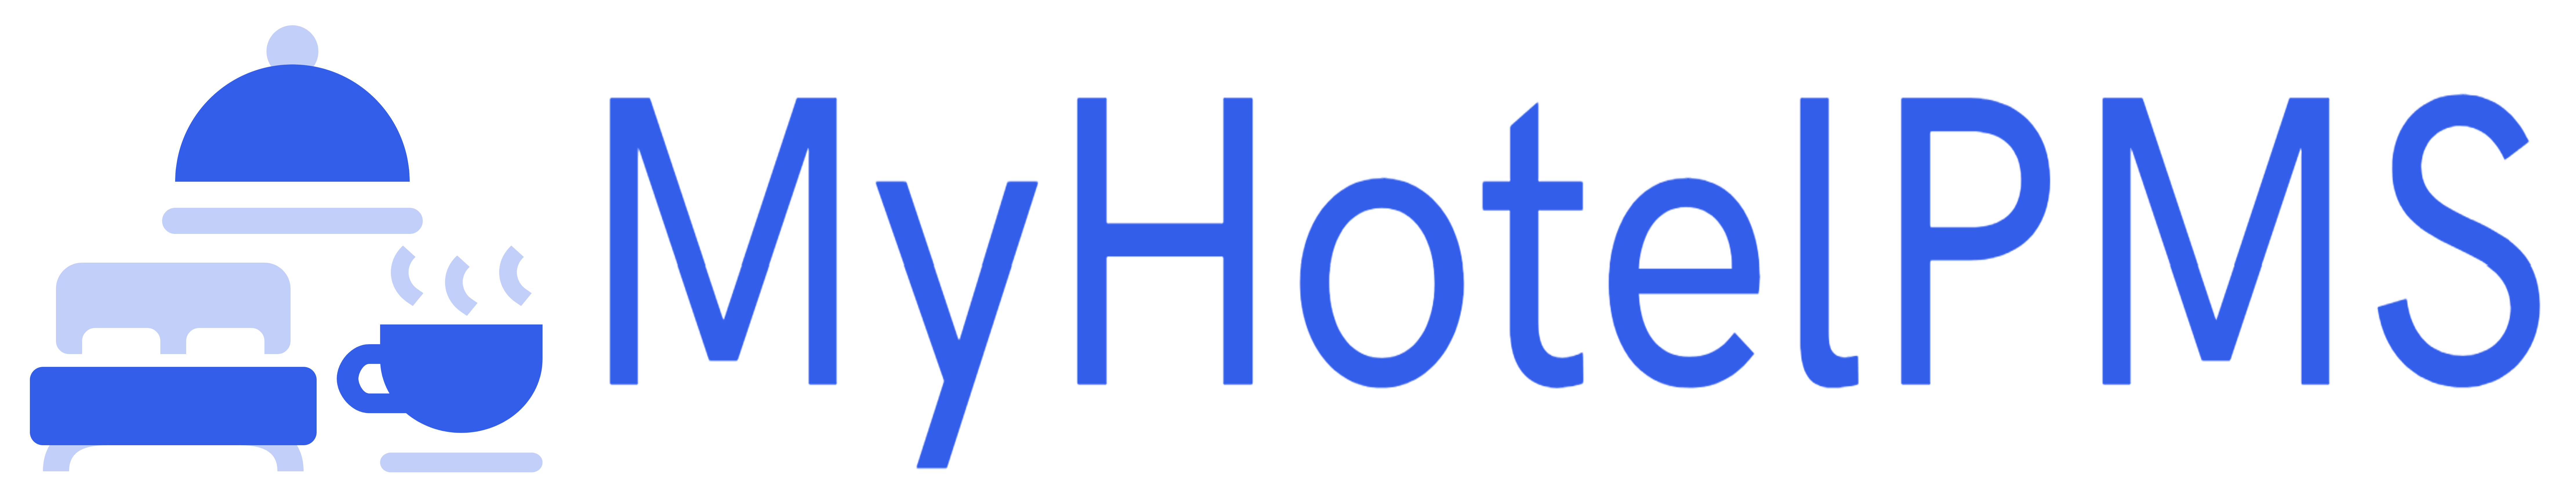 MyHotelPMS Logos, Images Hotel PMS Software   Trademark Hotel PMS Software  Symbols Hotel PMS Software  ICONS Hotel Property Management System for Cloud Hotel PMS, Hotel Front Desk, Direct Booking Engine, Hotel Channel Manager, Hotel OTA's, Hotel GDS, Hotel Payment Gateway, Hotel Concierge Services, Hotel Website